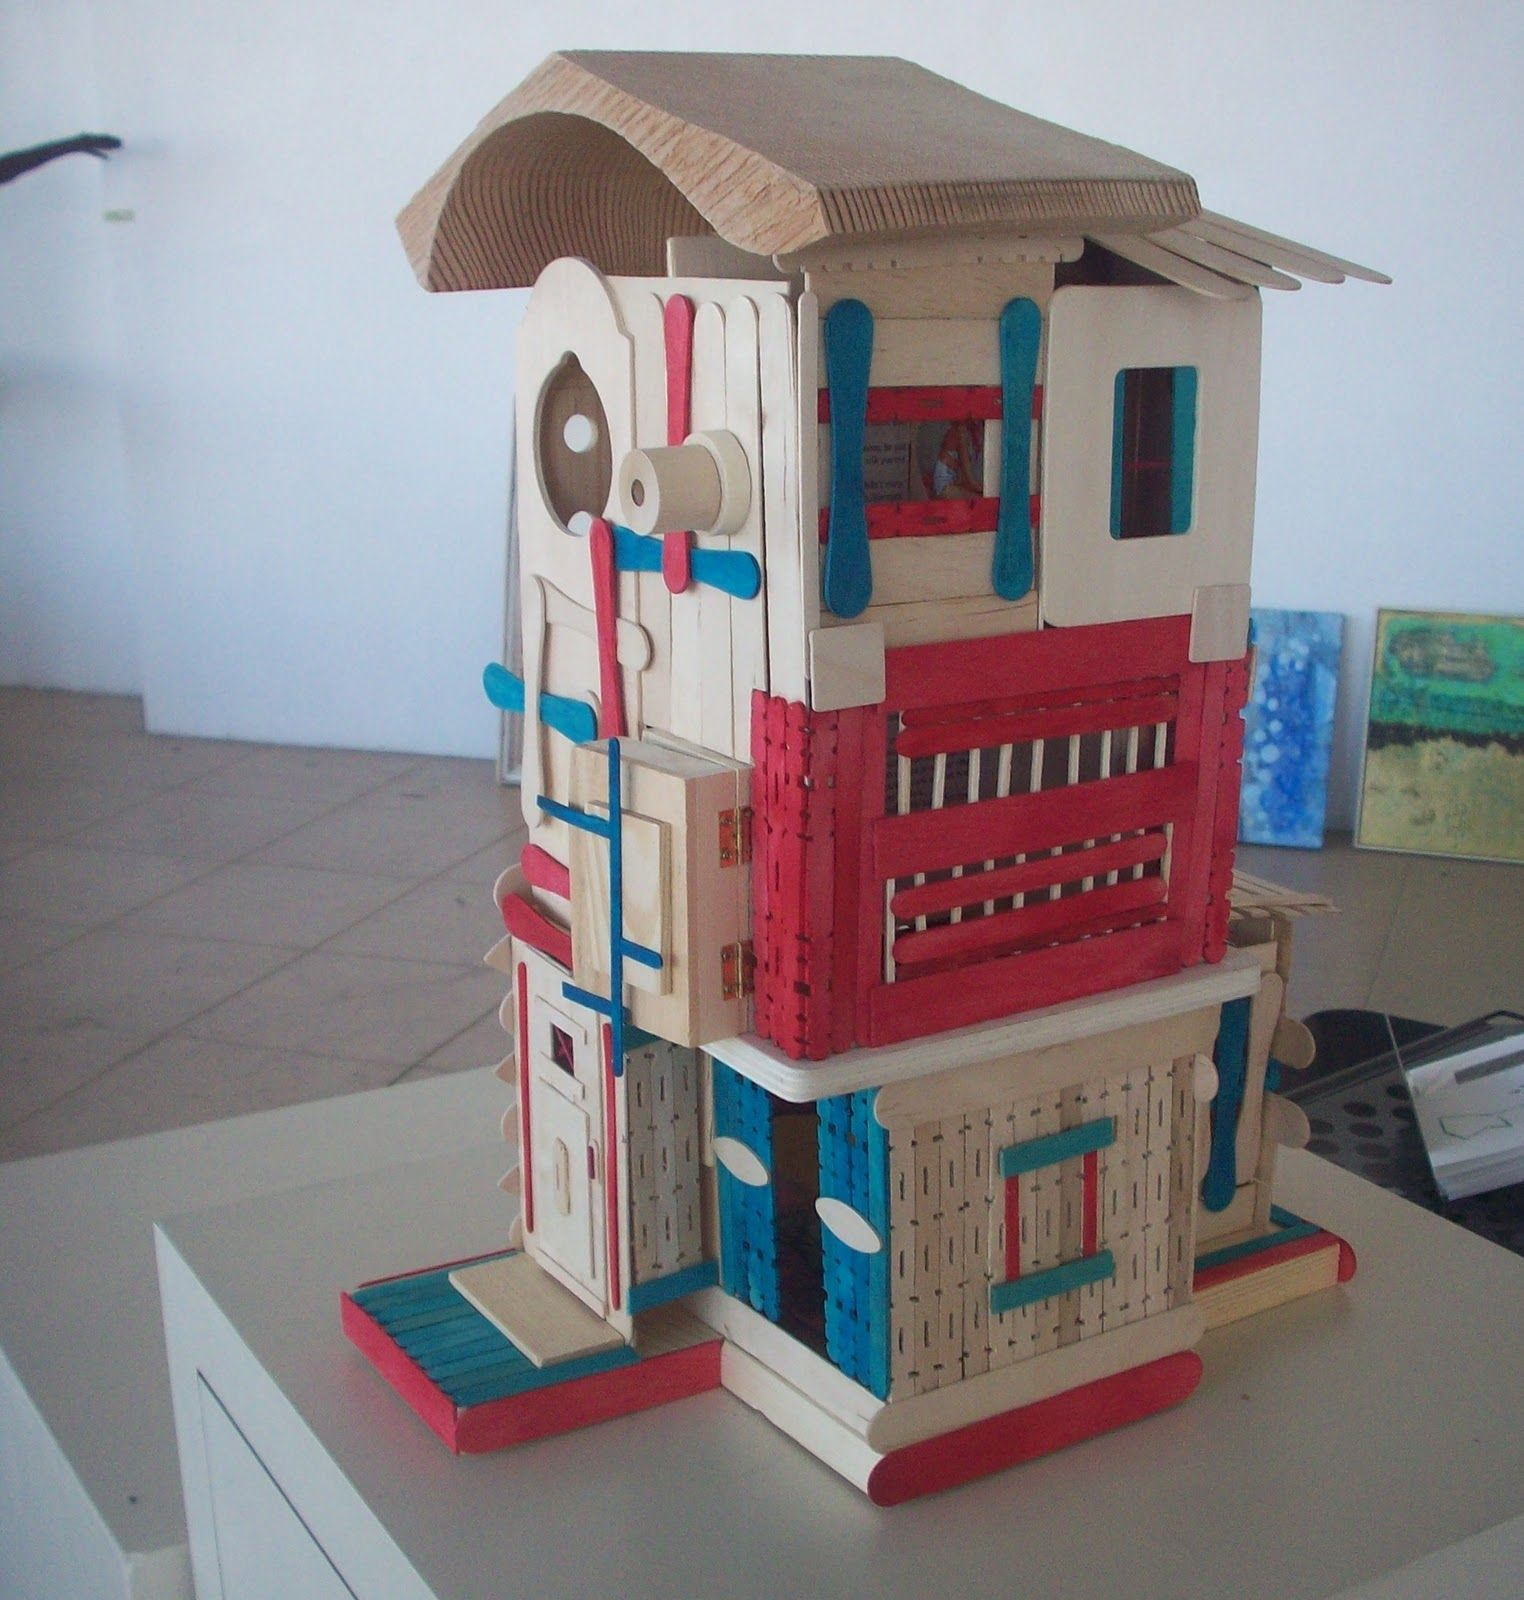 FORT FRIDAY - POPSICLE STICK EDITION | Popsicle stick houses, House ...